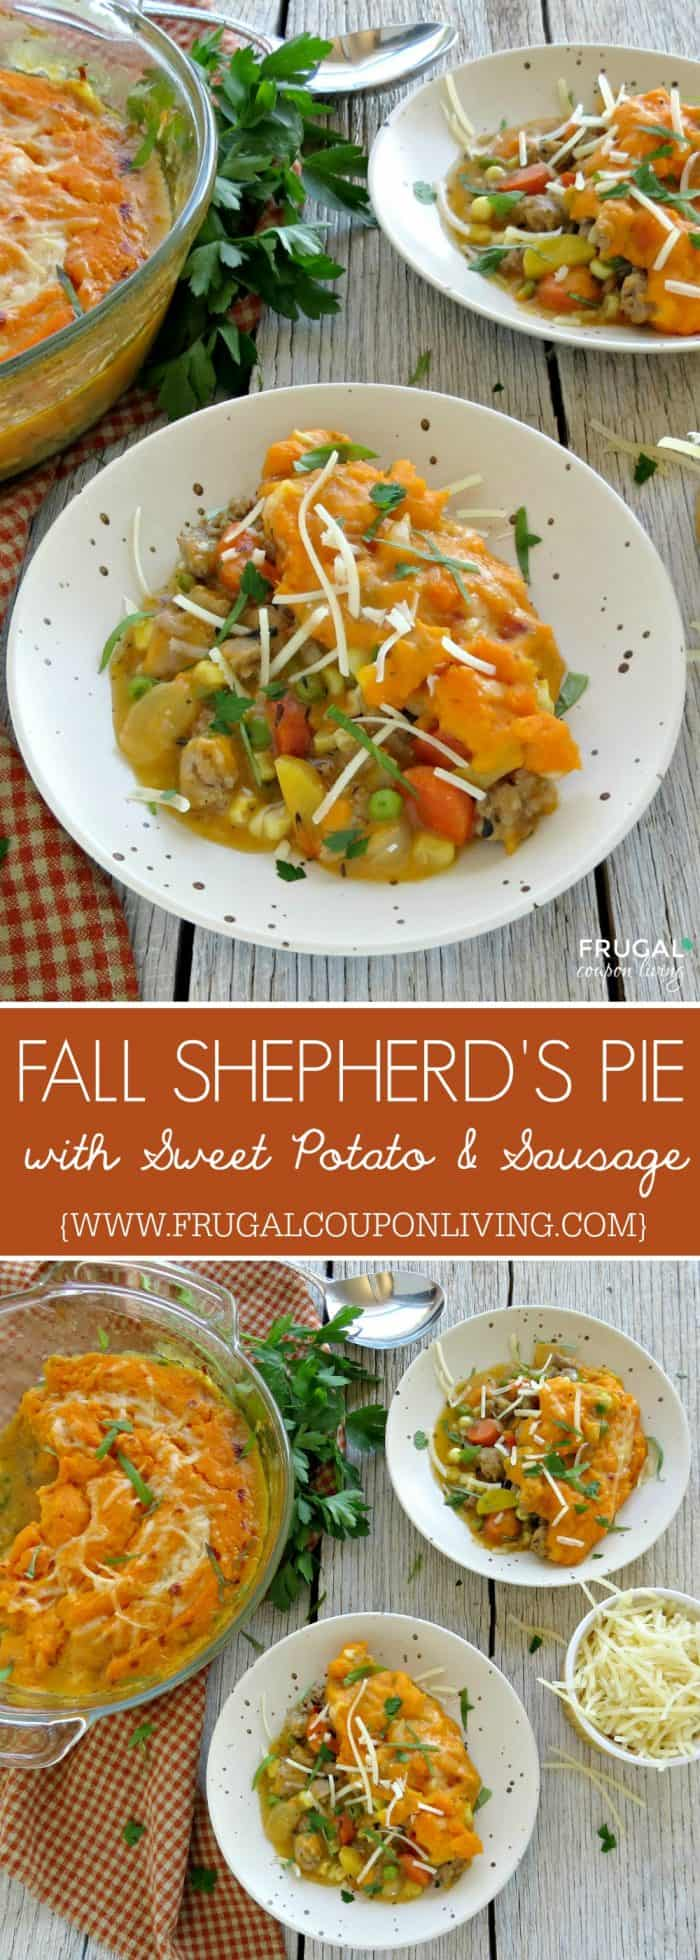 fall-sausage-shepherds-pie-long-frugal-coupon-living